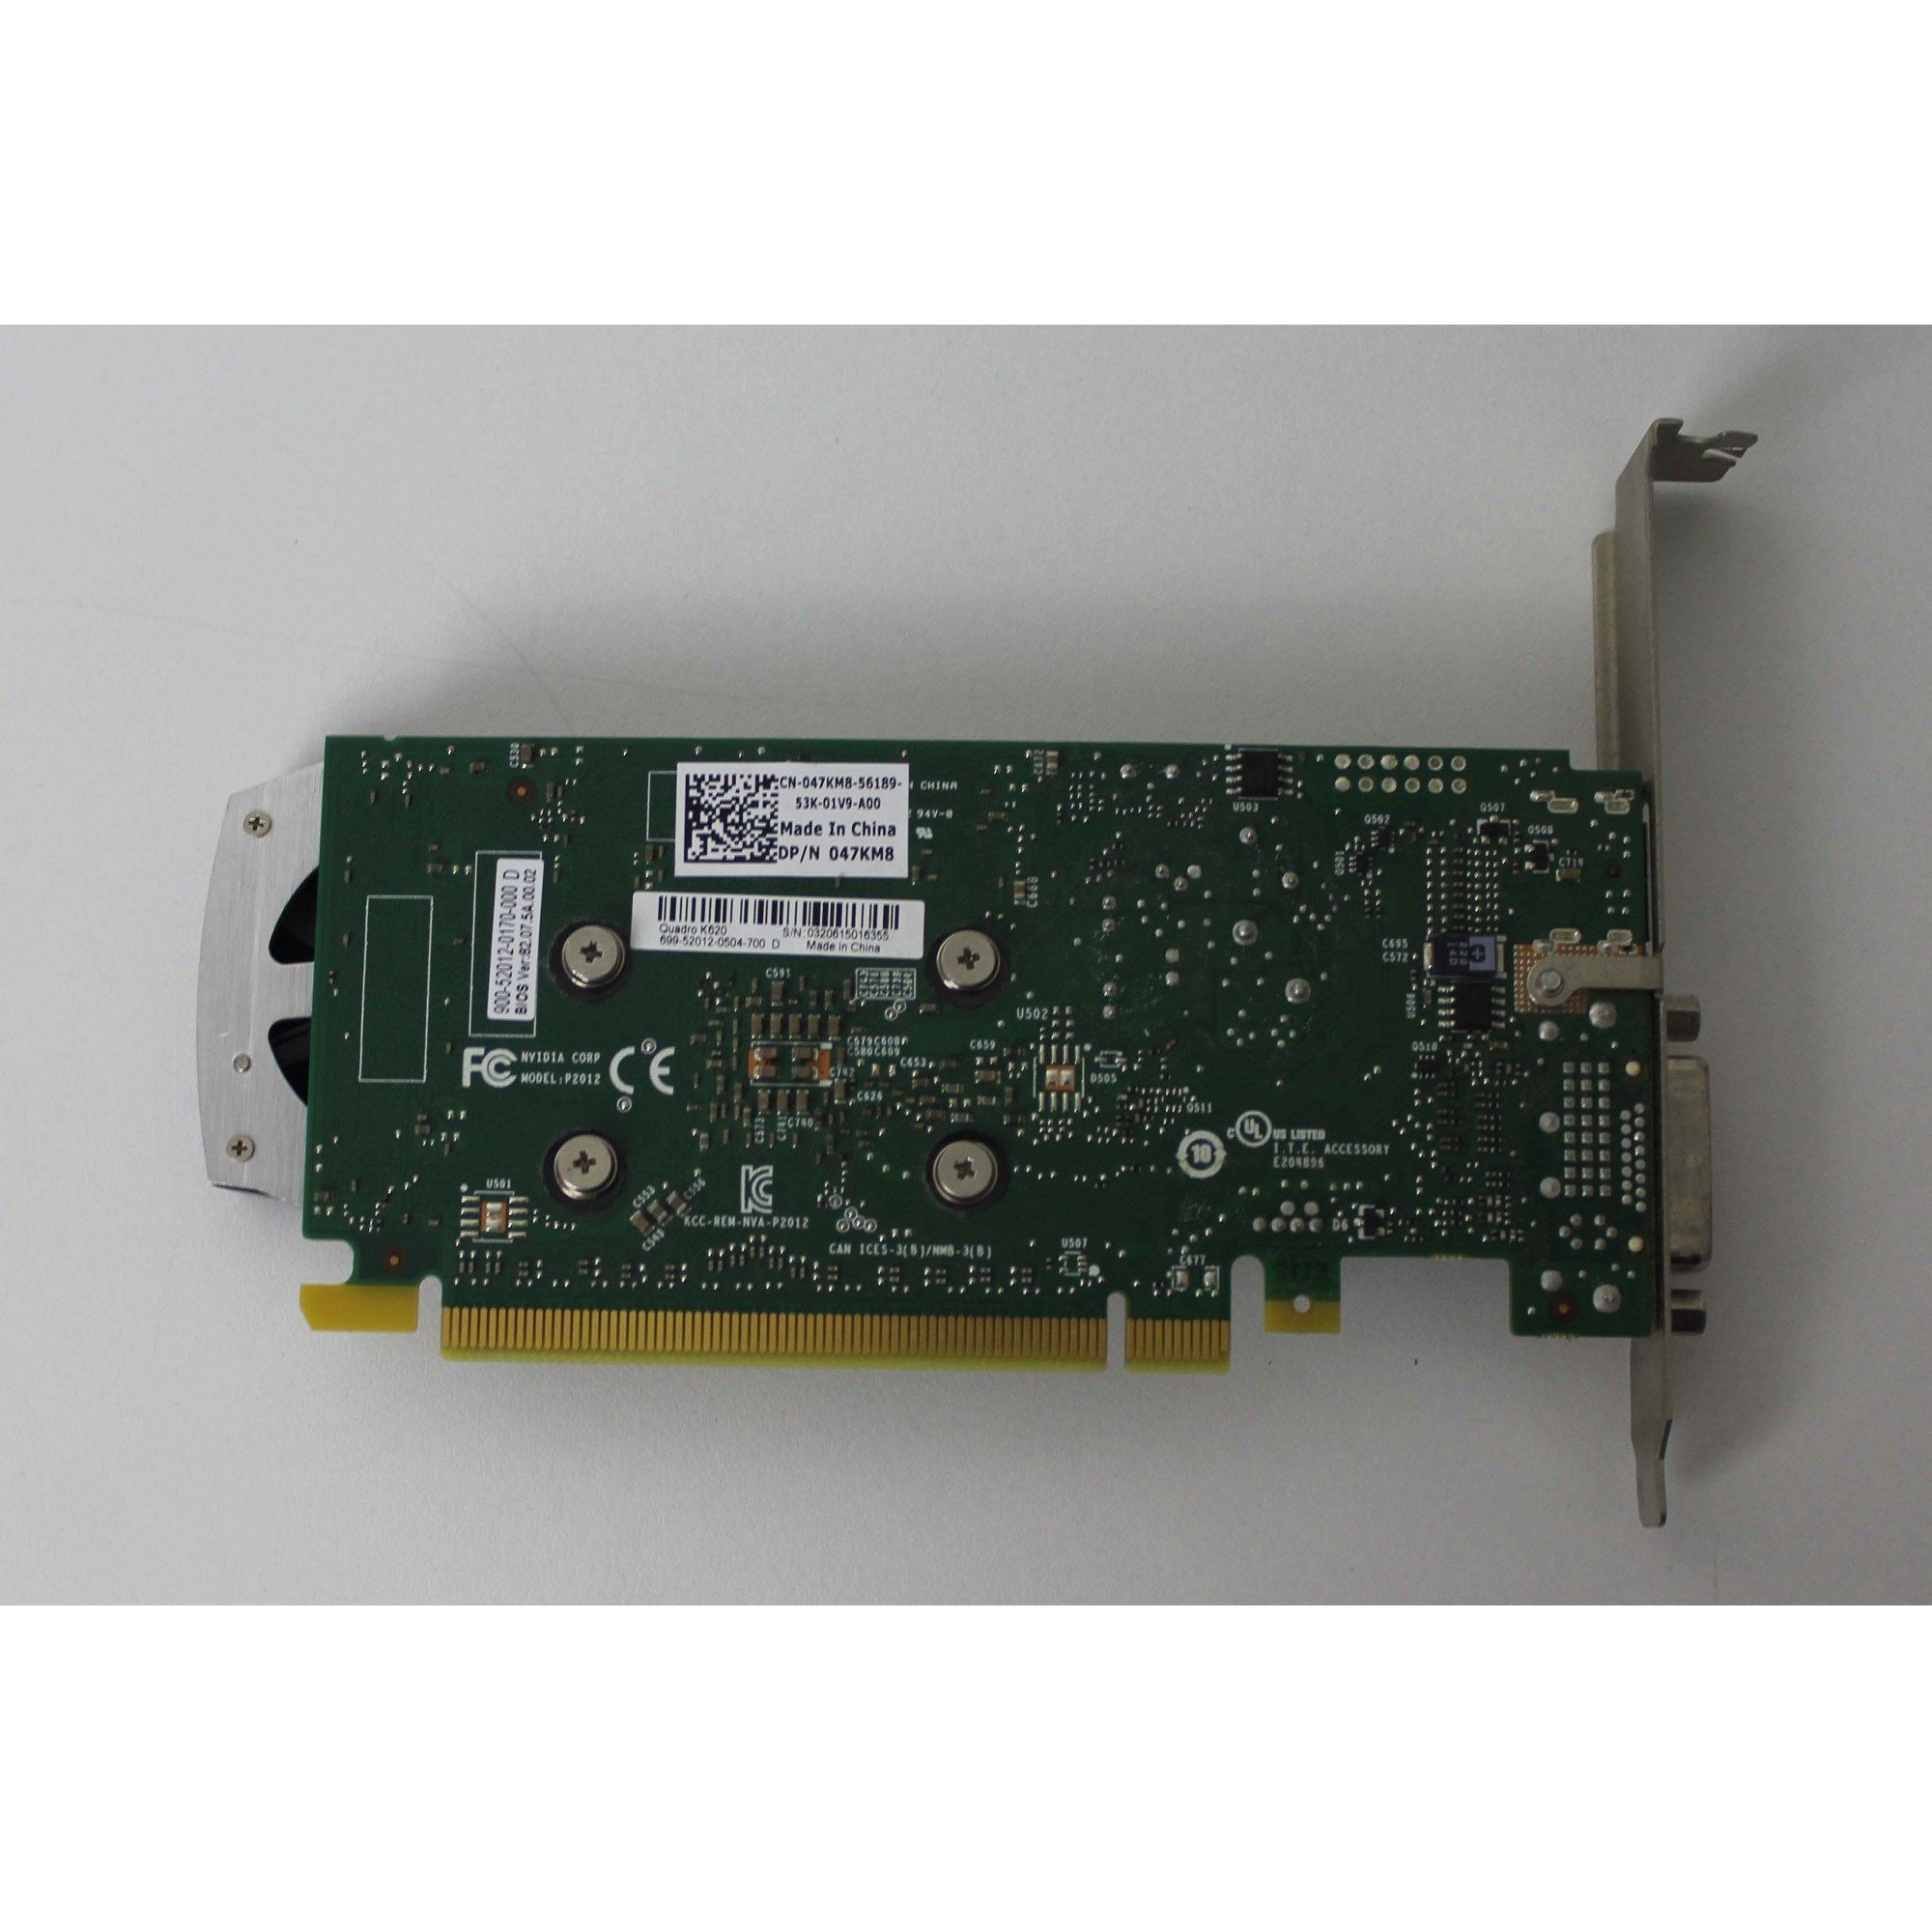 PLACA DE VIDEO QUADRO K620 2GB GDDR3 128 BIT